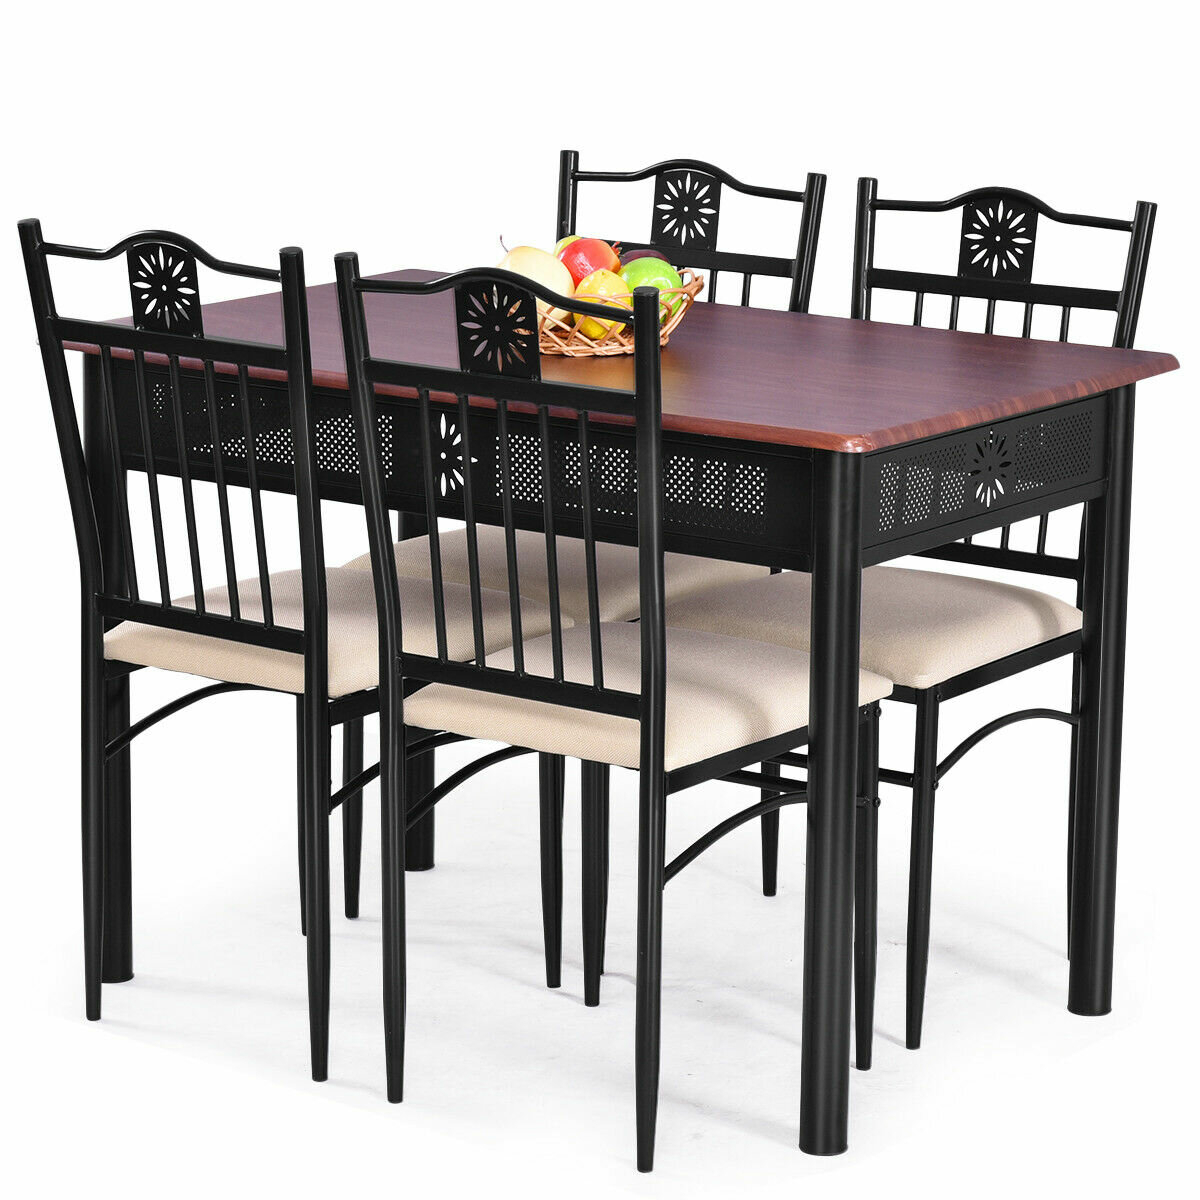 Ganya 5 Piece Dining Set Within Latest Turnalar 5 Piece Dining Sets (View 8 of 20)